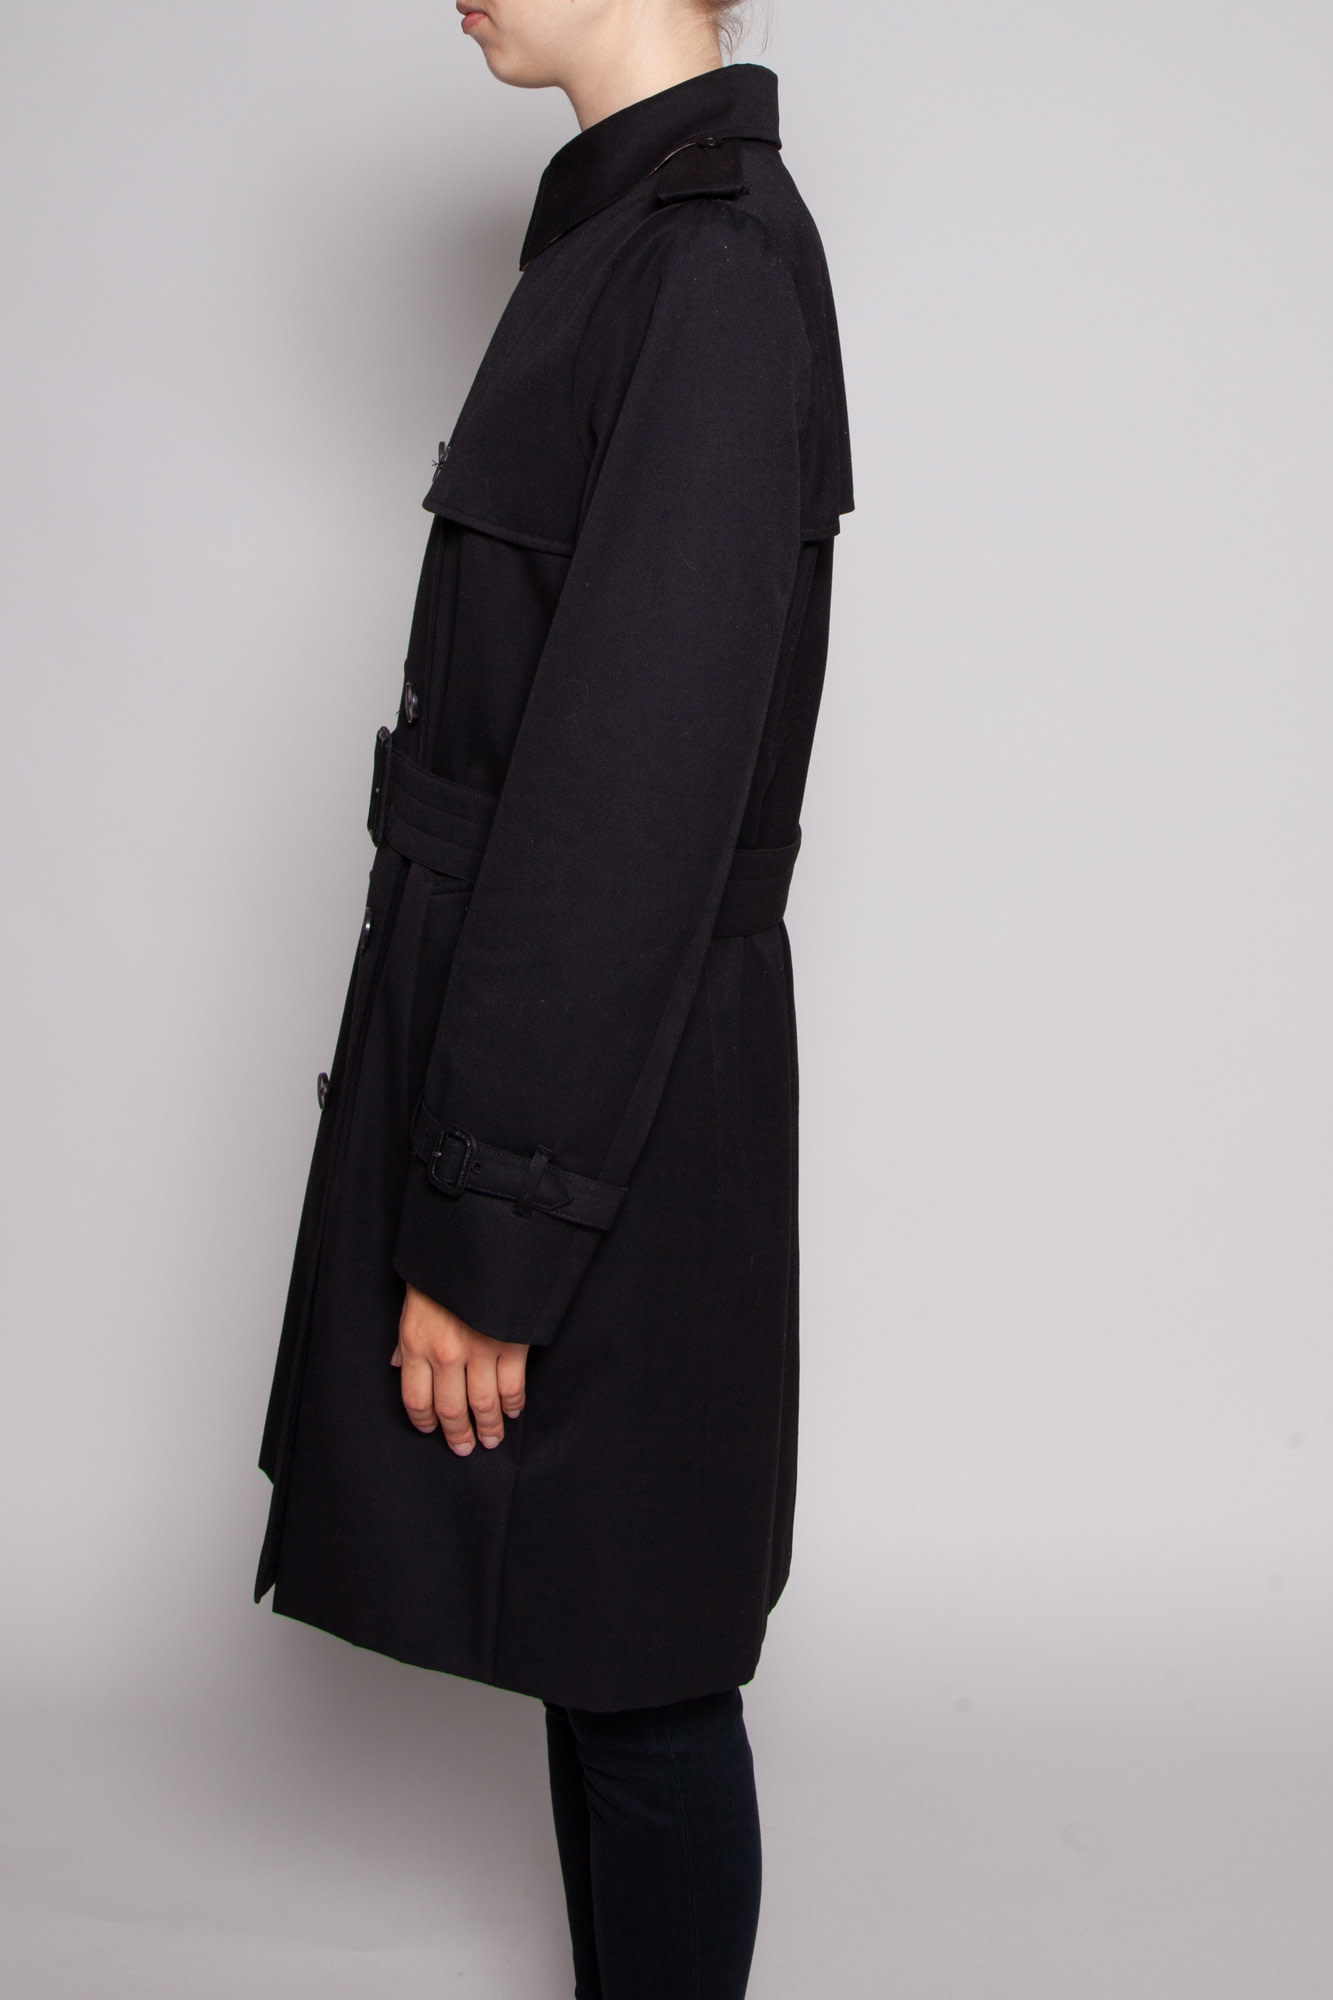 Aquascutum BLACK TRENCH COAT LINED WITH HOUNDSTOOTH PATTERN